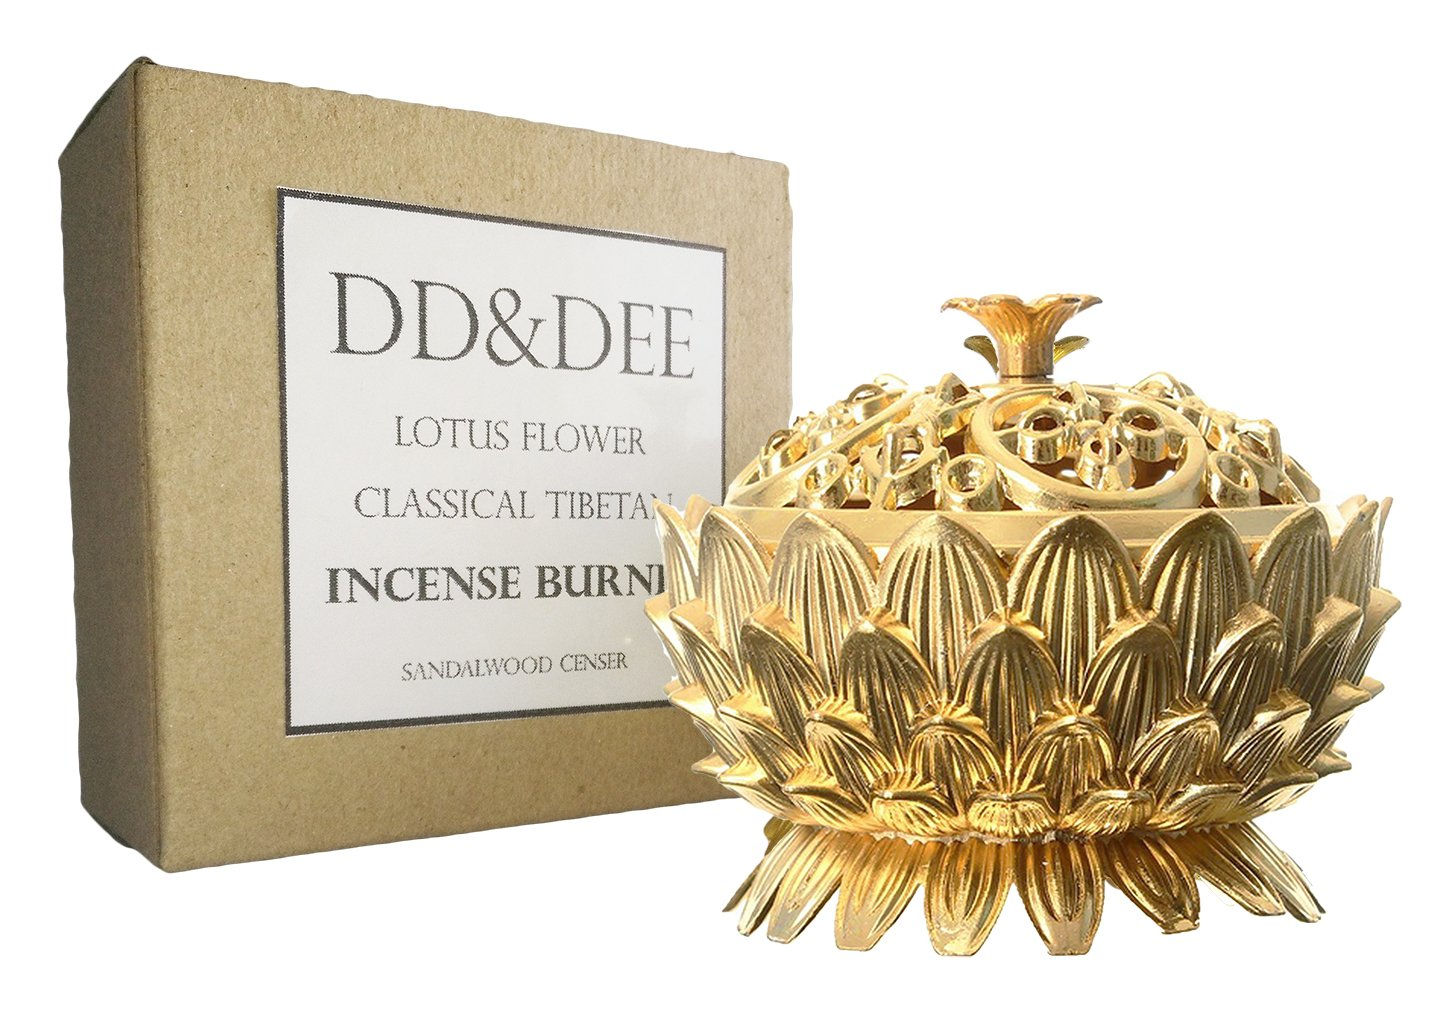 DD&DEE Incense Burner Lotus Flower Classical Tibetan Alloy Mini Sandalwood Censer by DD&DEE (Image #4)